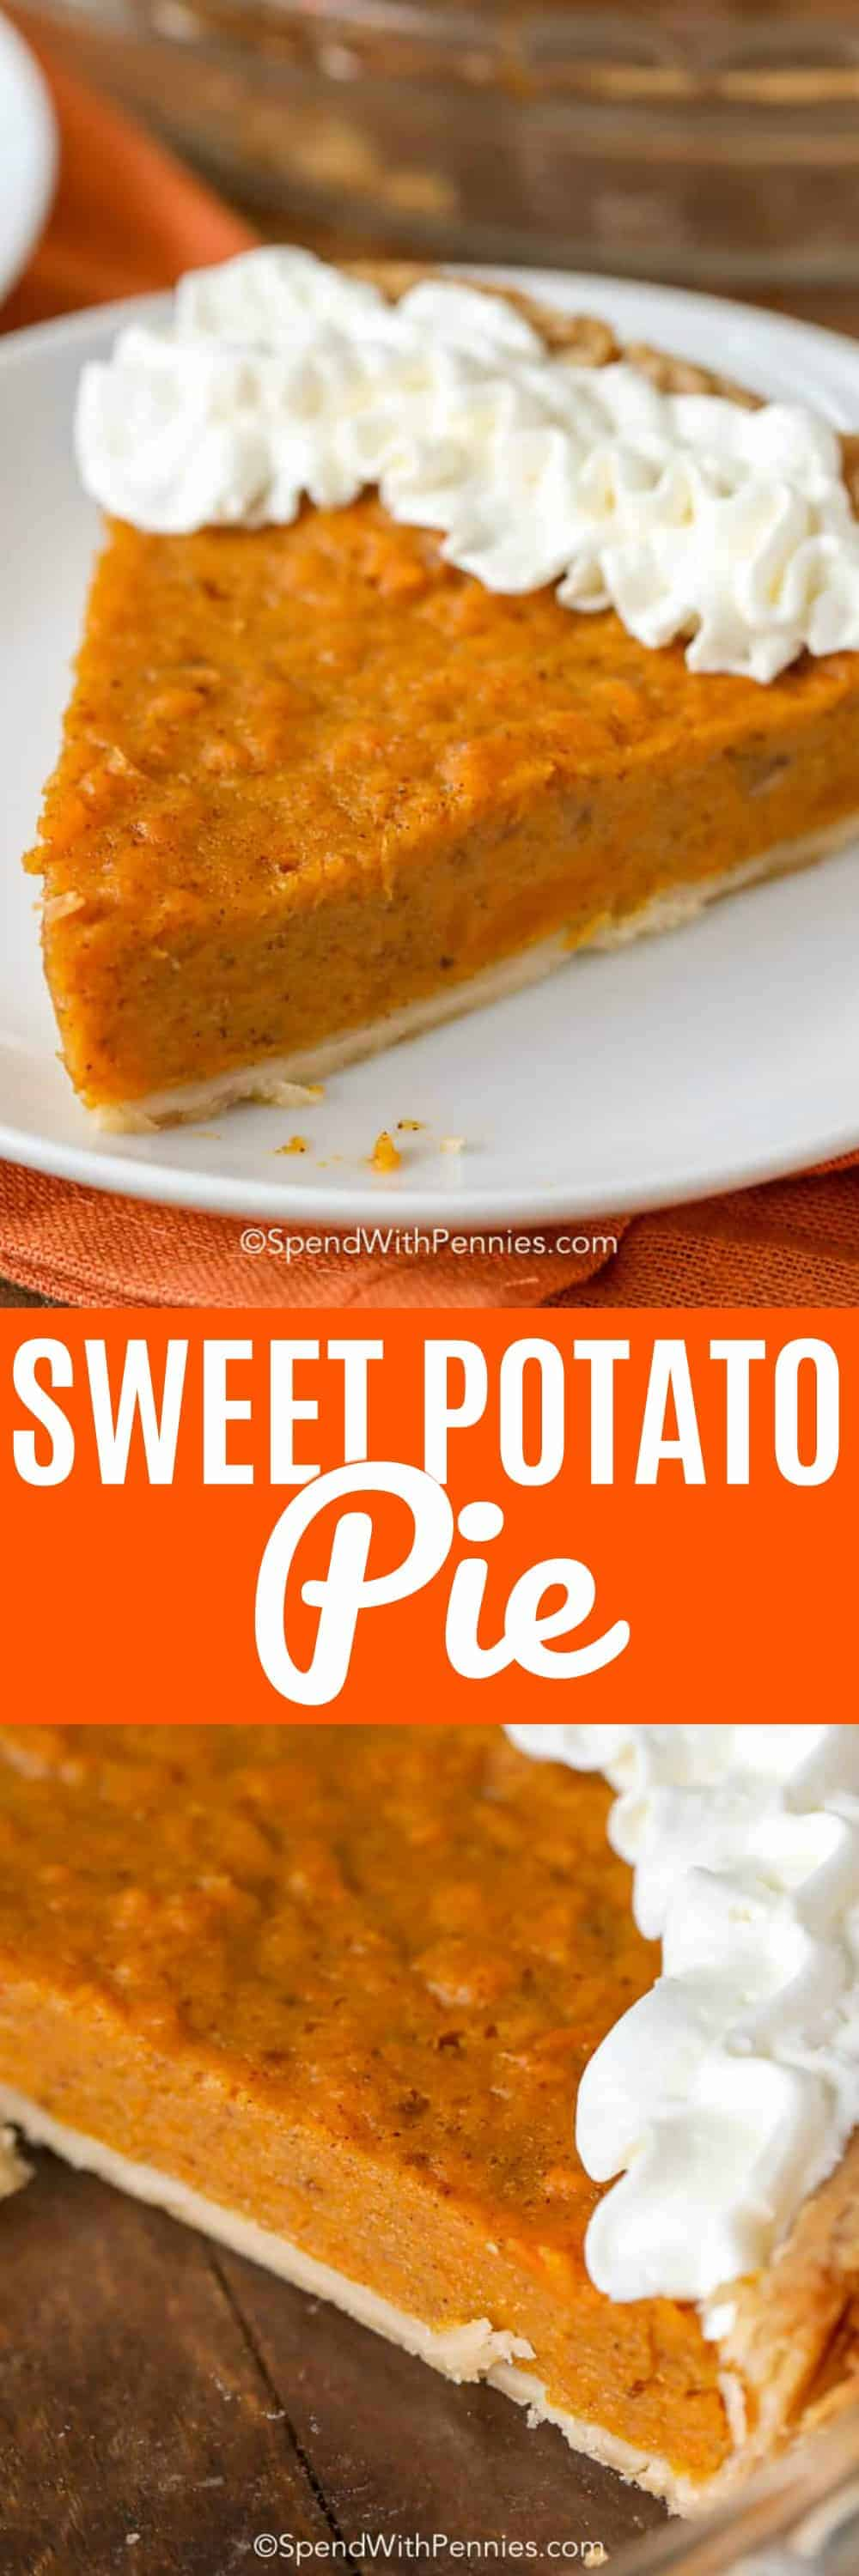 This is the best Sweet Potato Pie recipe you have ever tried! Not only is it incredibly easy to make but the flavor is just perfectly spiced and yet deliciously mild! #spendwithpennies #sweetpotato #sweetpotatopie #festivedessert #holidaydessert #easypie #pierecipe #easyrecipe #fromscratch